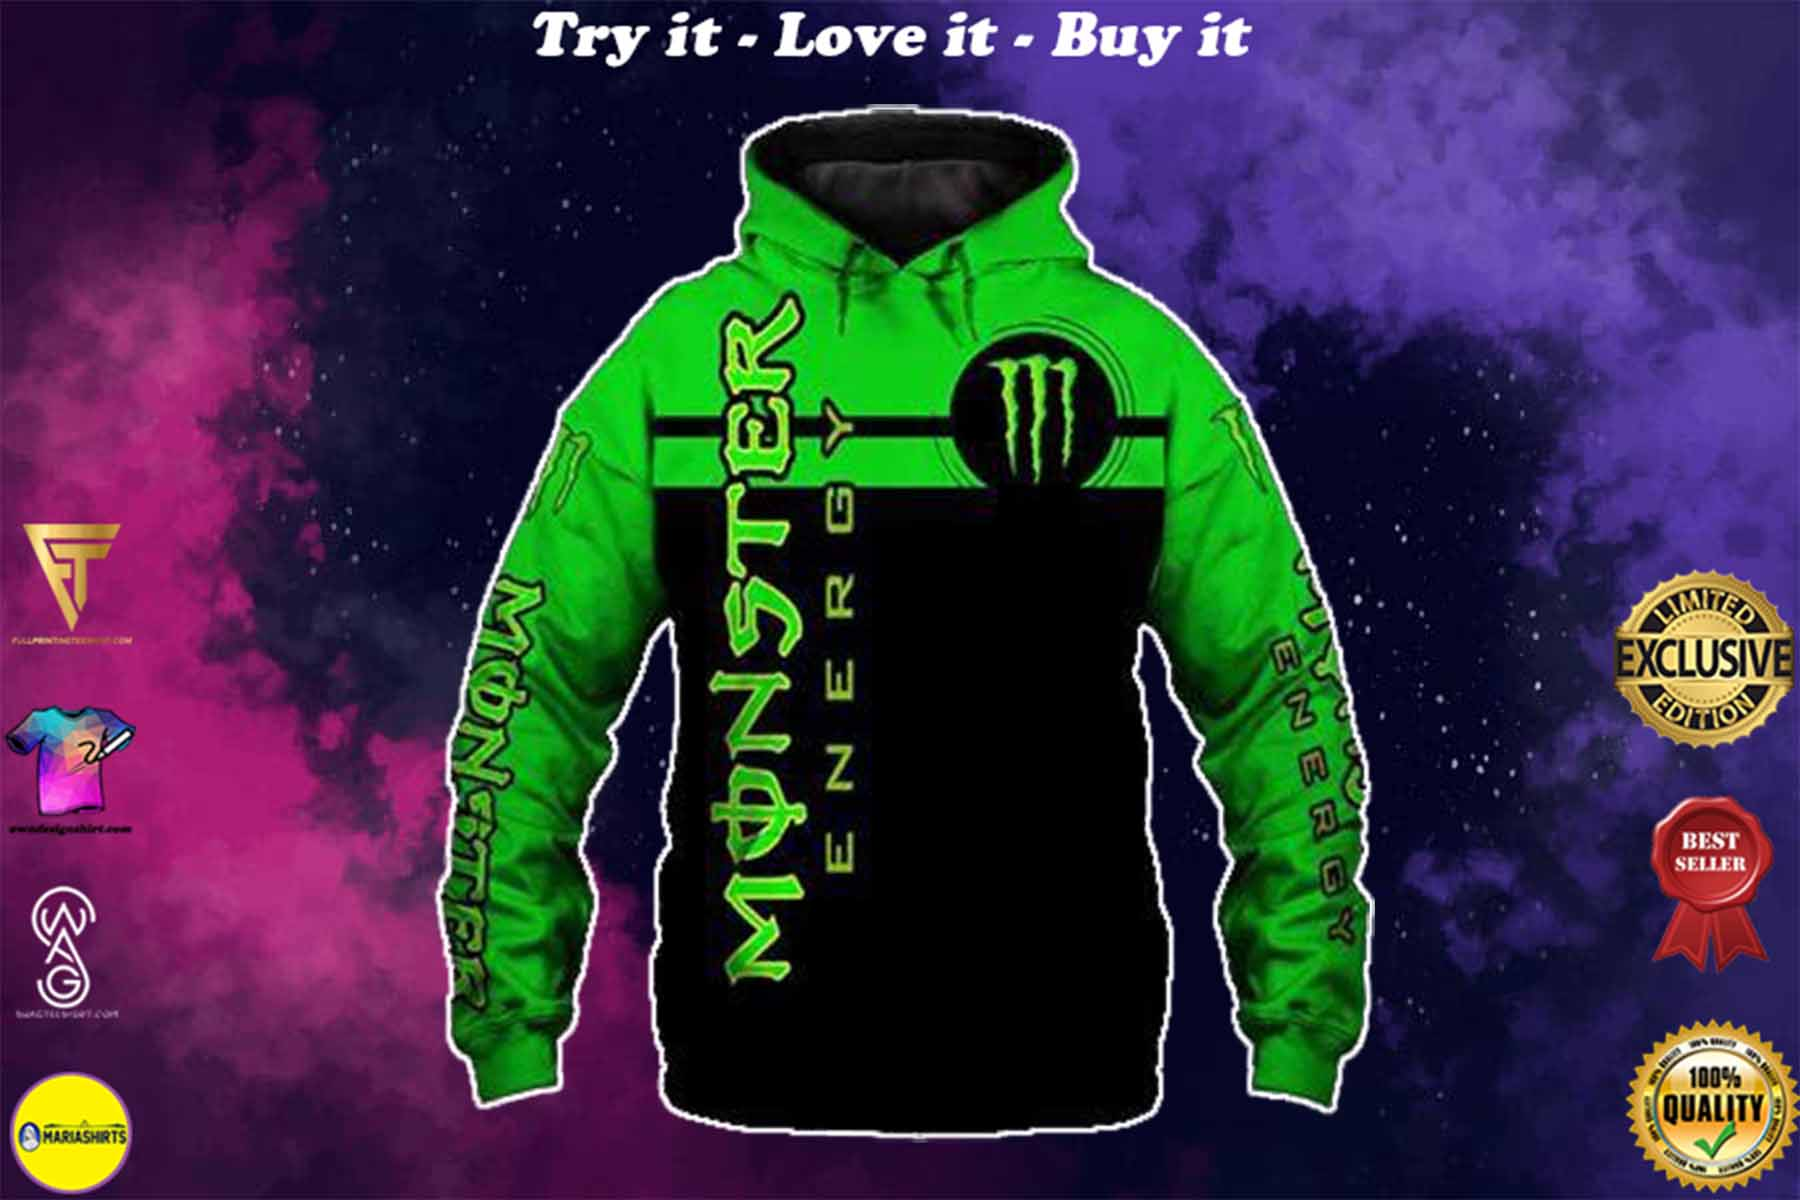 [special edition] fox racing team and monster energy motocross supercross full printing shirt - maria